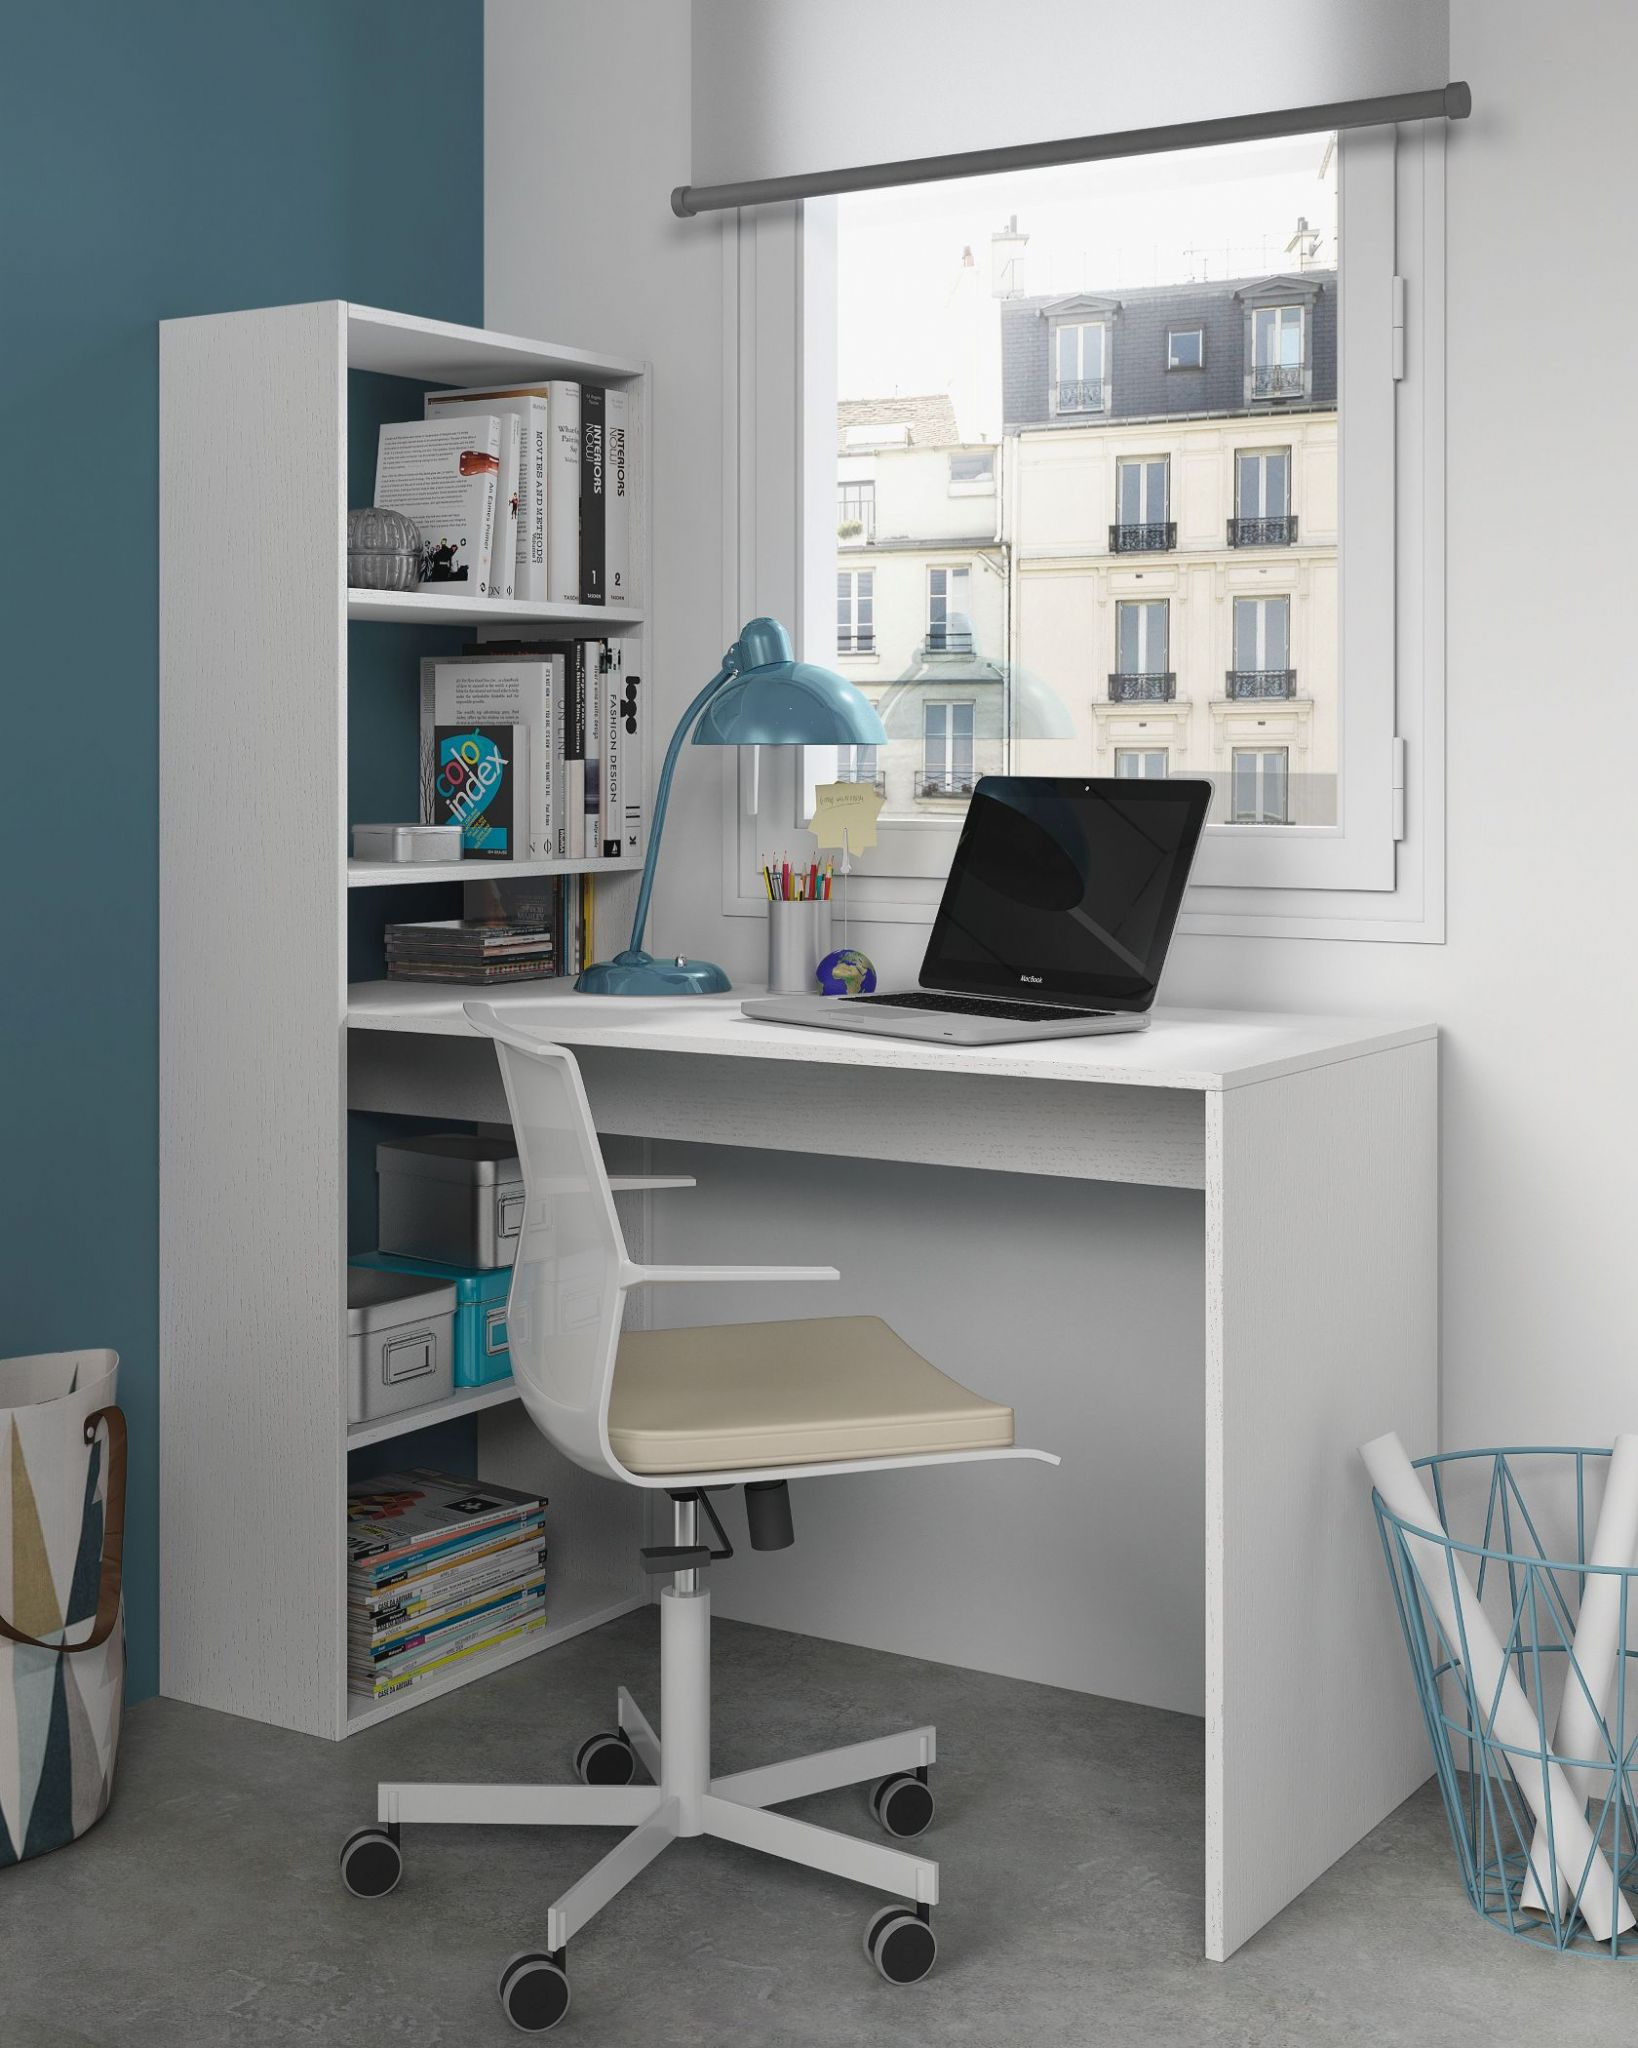 printer storage shelves with desks creative combination size bookshelves super corner computer furniture compact shelving contemporary bookcase desk bookshelf plus beige ladder and white design ikea of level ideas matching full